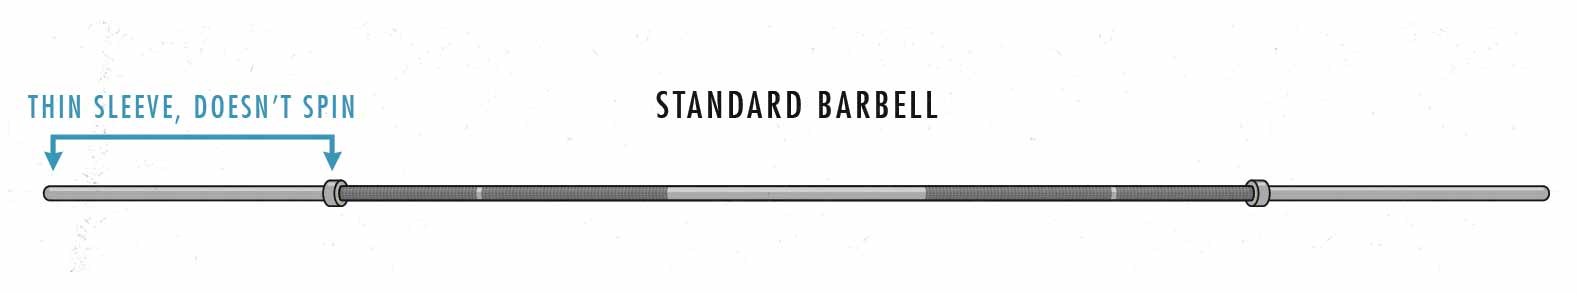 Illustration of a cheap standard barbell.